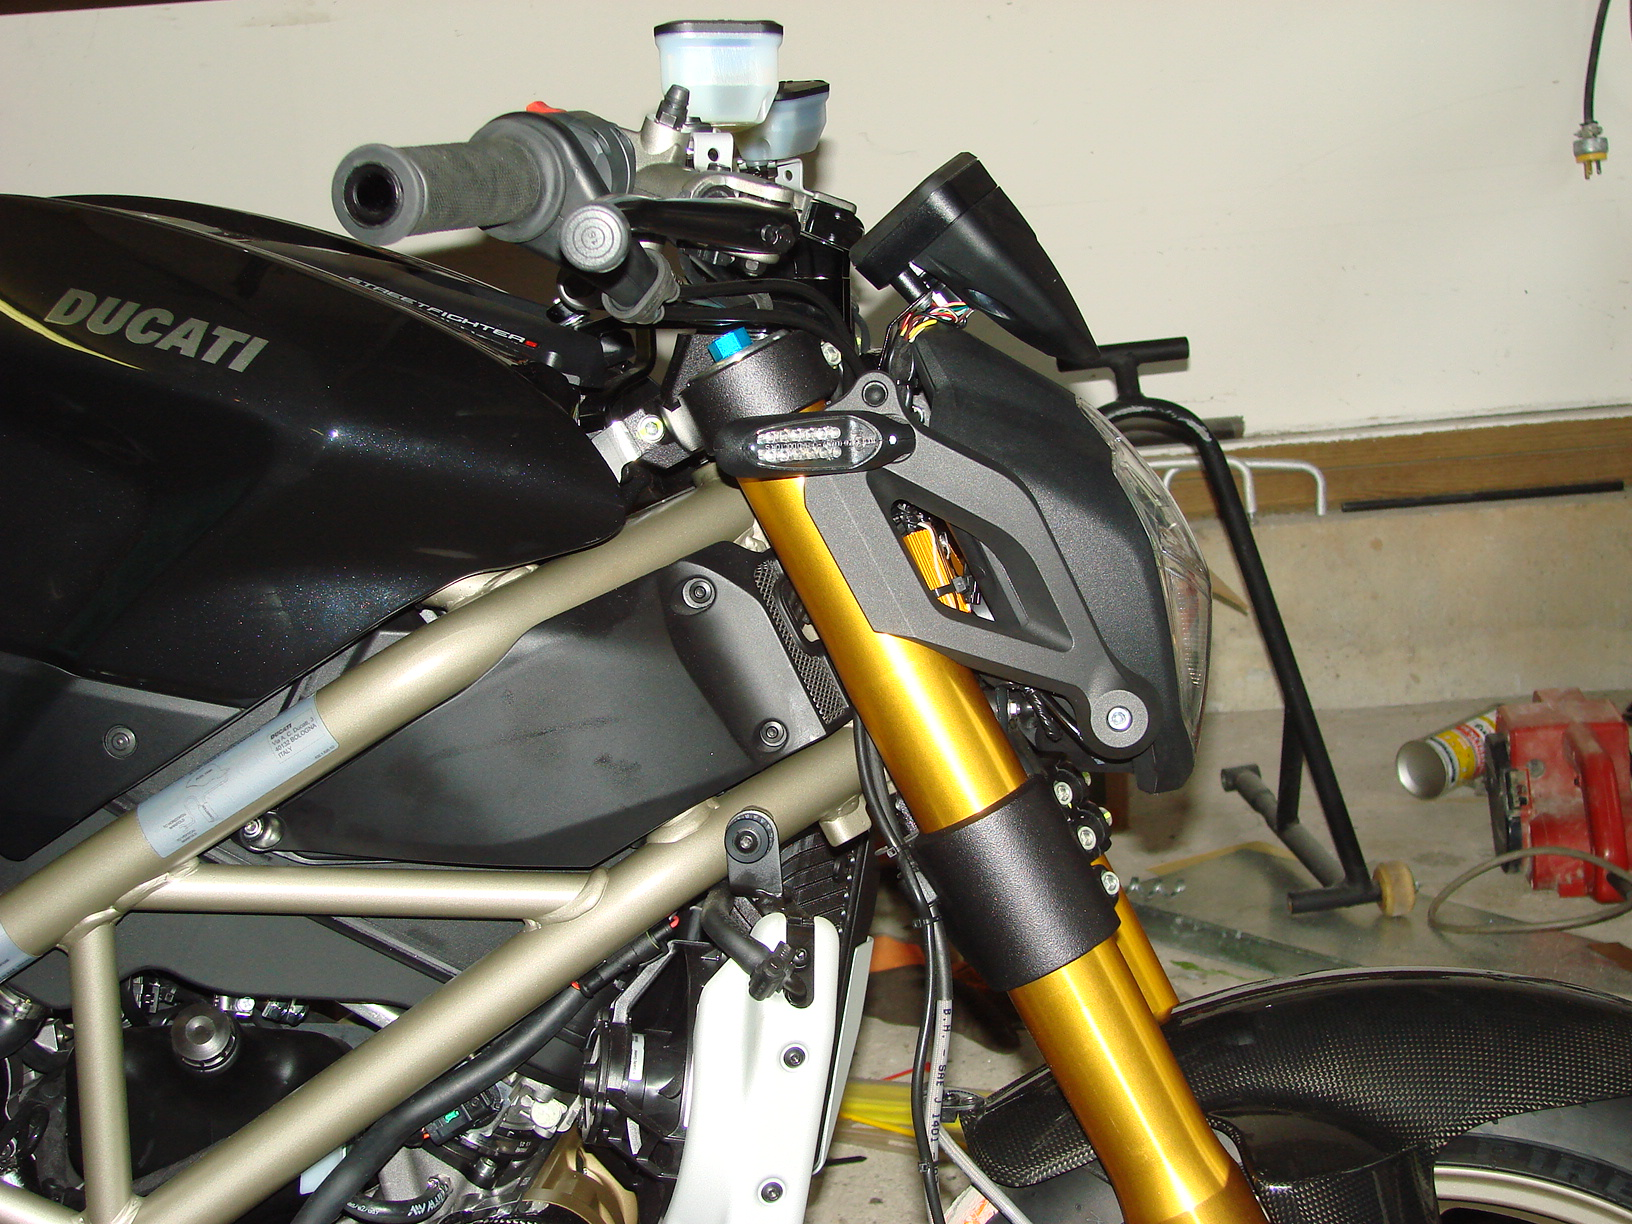 front headlight replacement - ducati.ms - the ultimate ducati forum